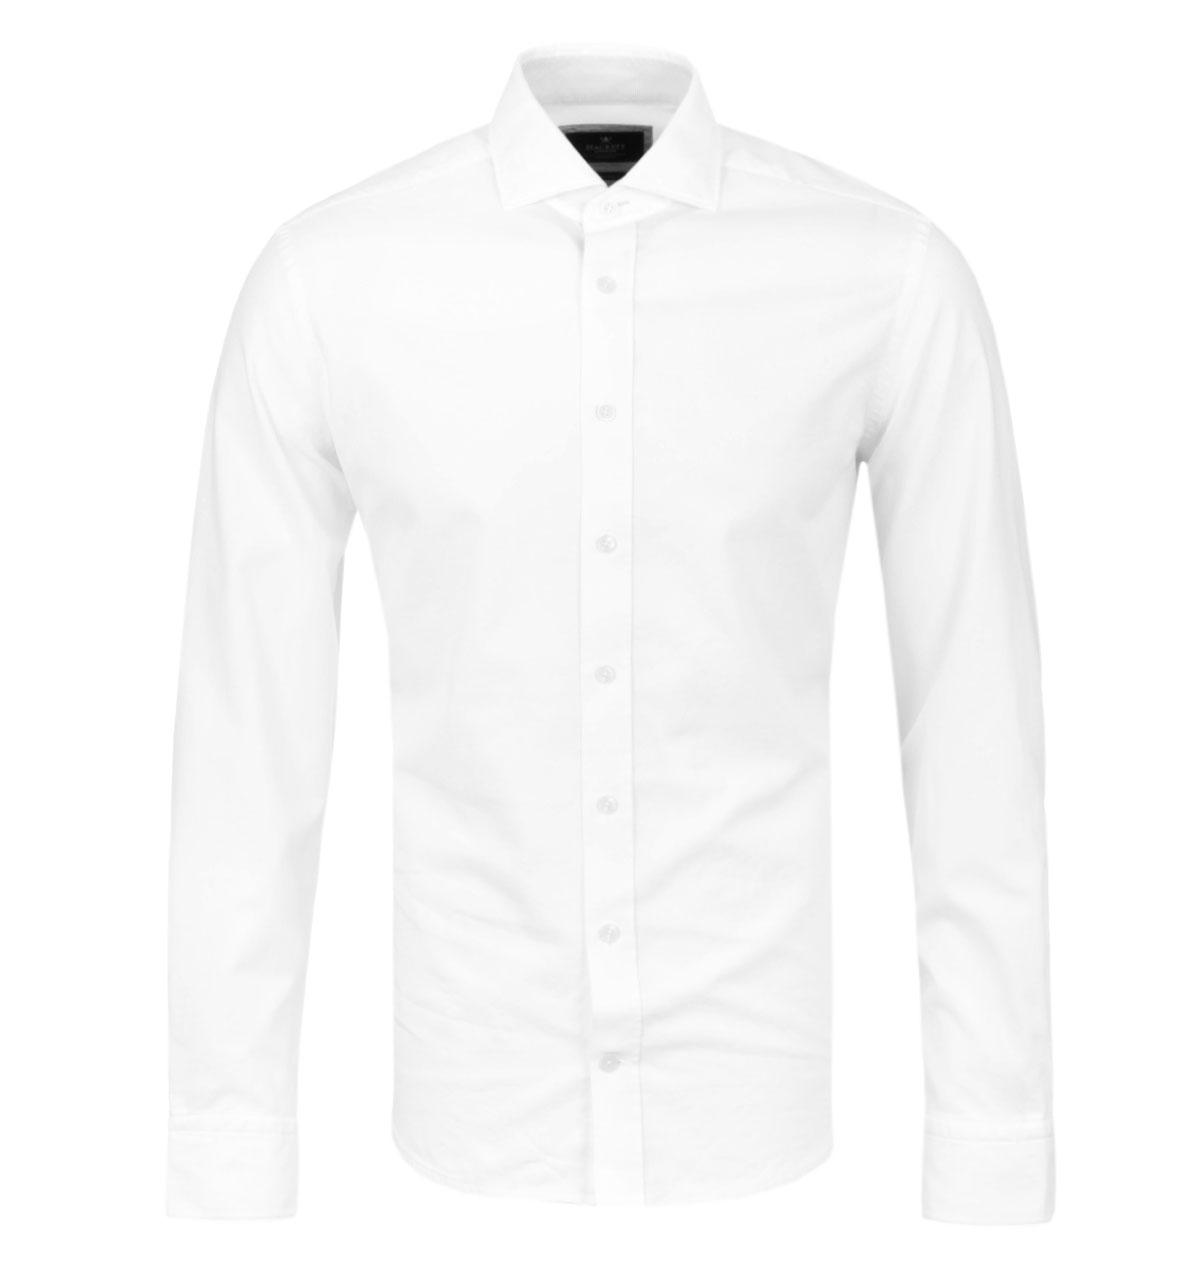 Textured Long Sleeve Slim Fit Shirt In China Cheap Online 7s7EPm